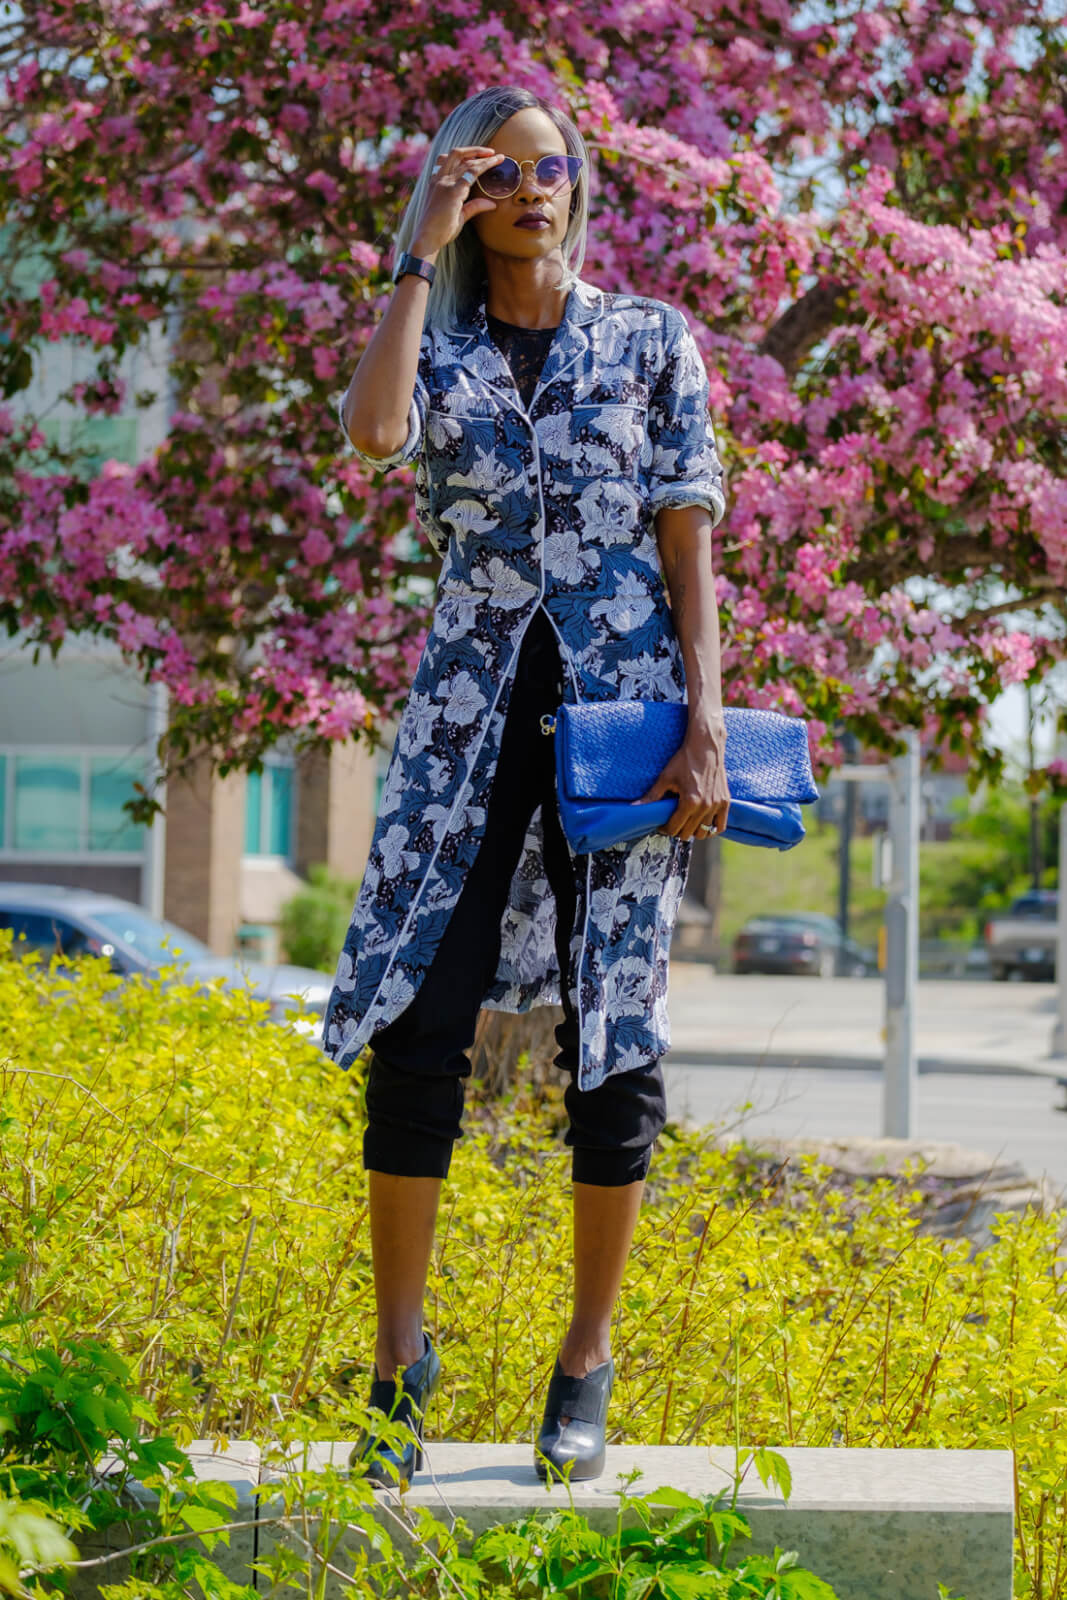 Printed dress, Winnipeg fashion, winnipeg street style, How to style a shirt dress, black lace crop top, what to wear, Floral prints, Summer florals